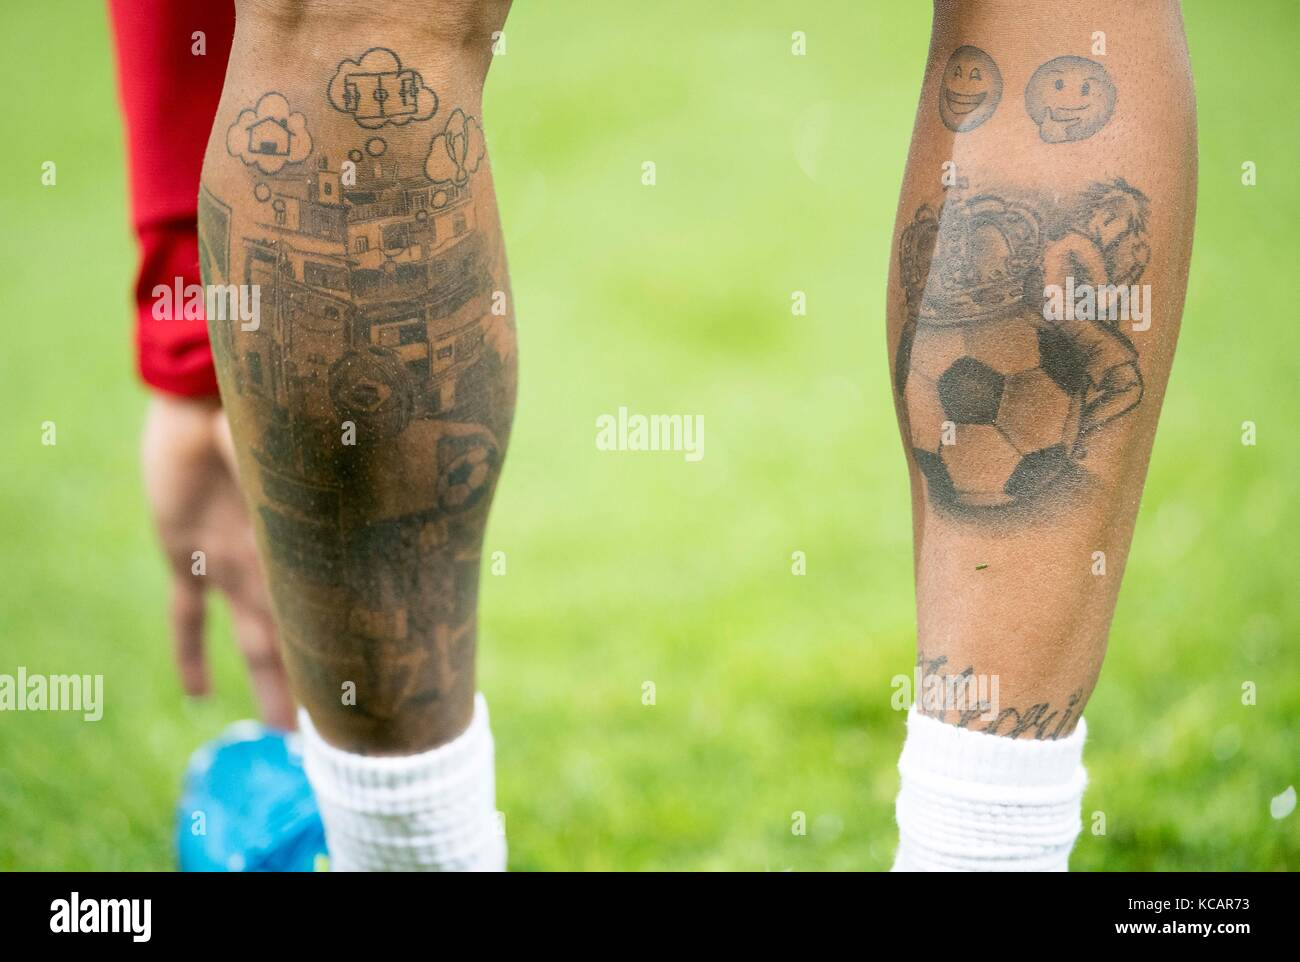 soccer tattoos stock photos soccer tattoos stock images alamy. Black Bedroom Furniture Sets. Home Design Ideas